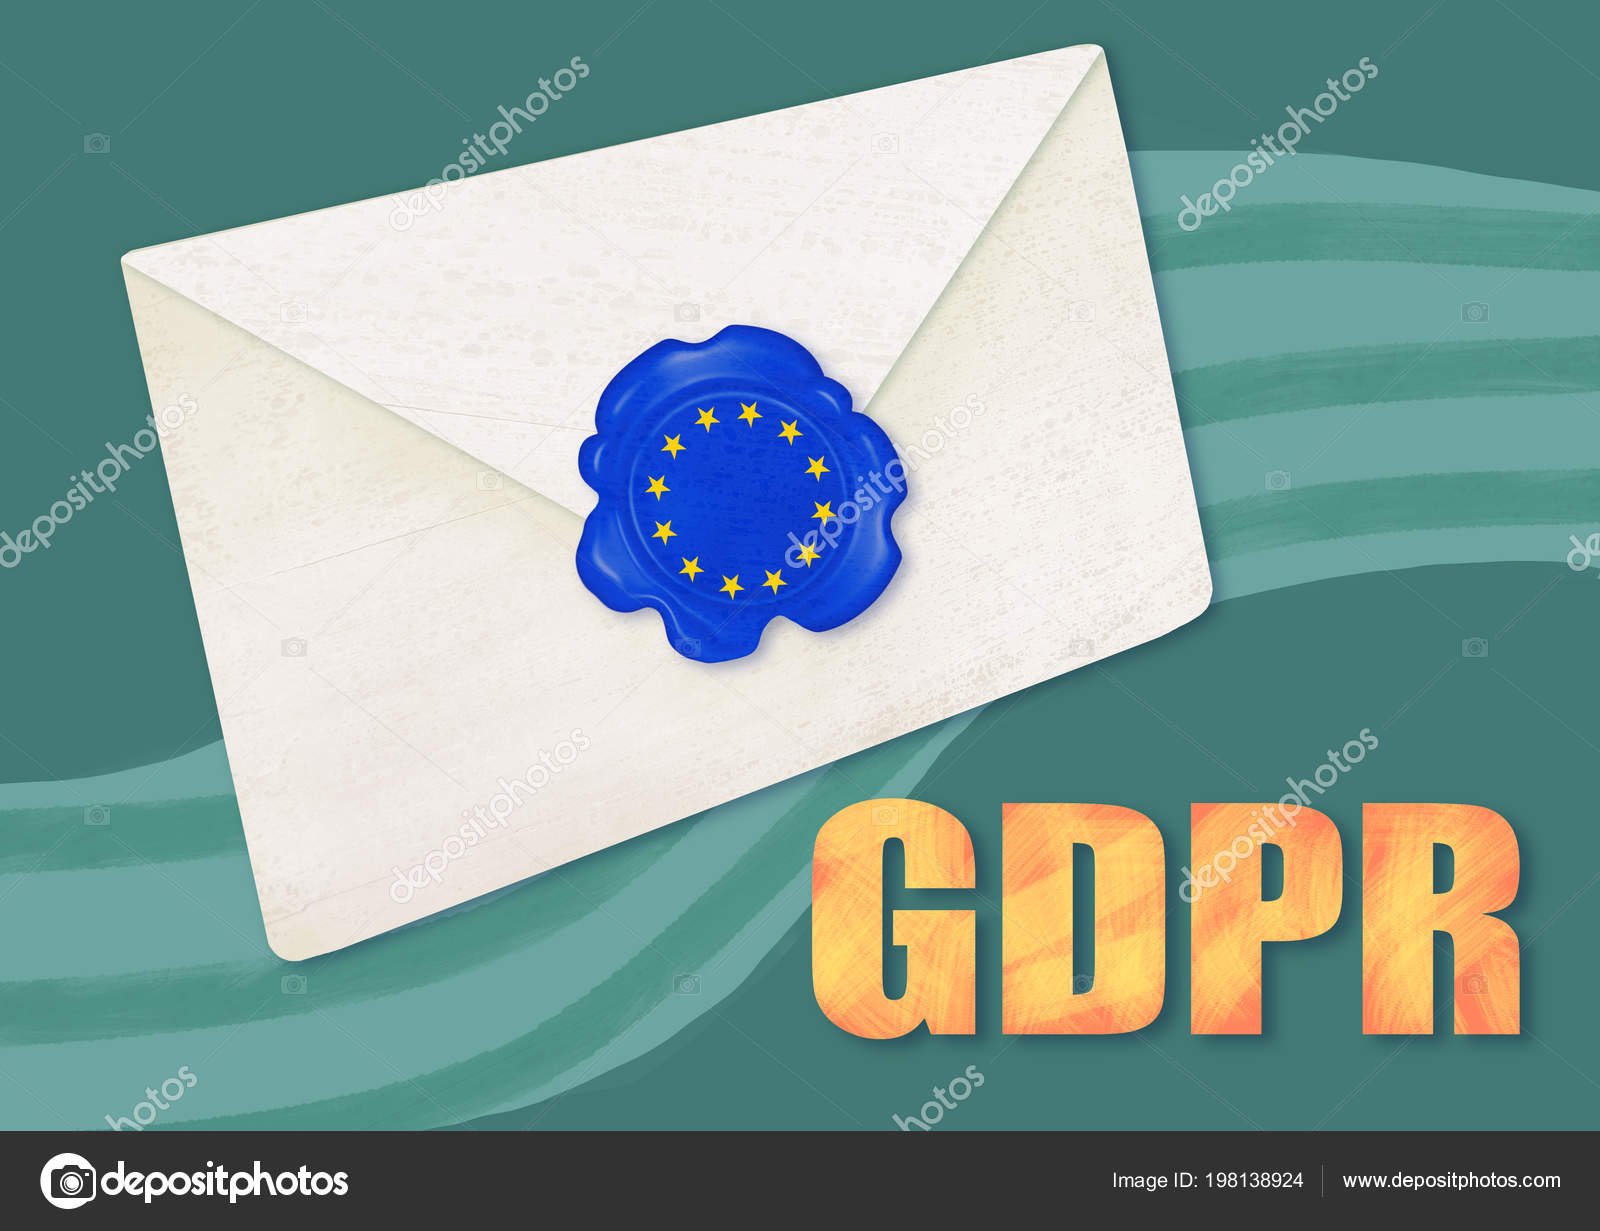 Gdpr Concept Illustration Sealed Letter European Stars Seal General